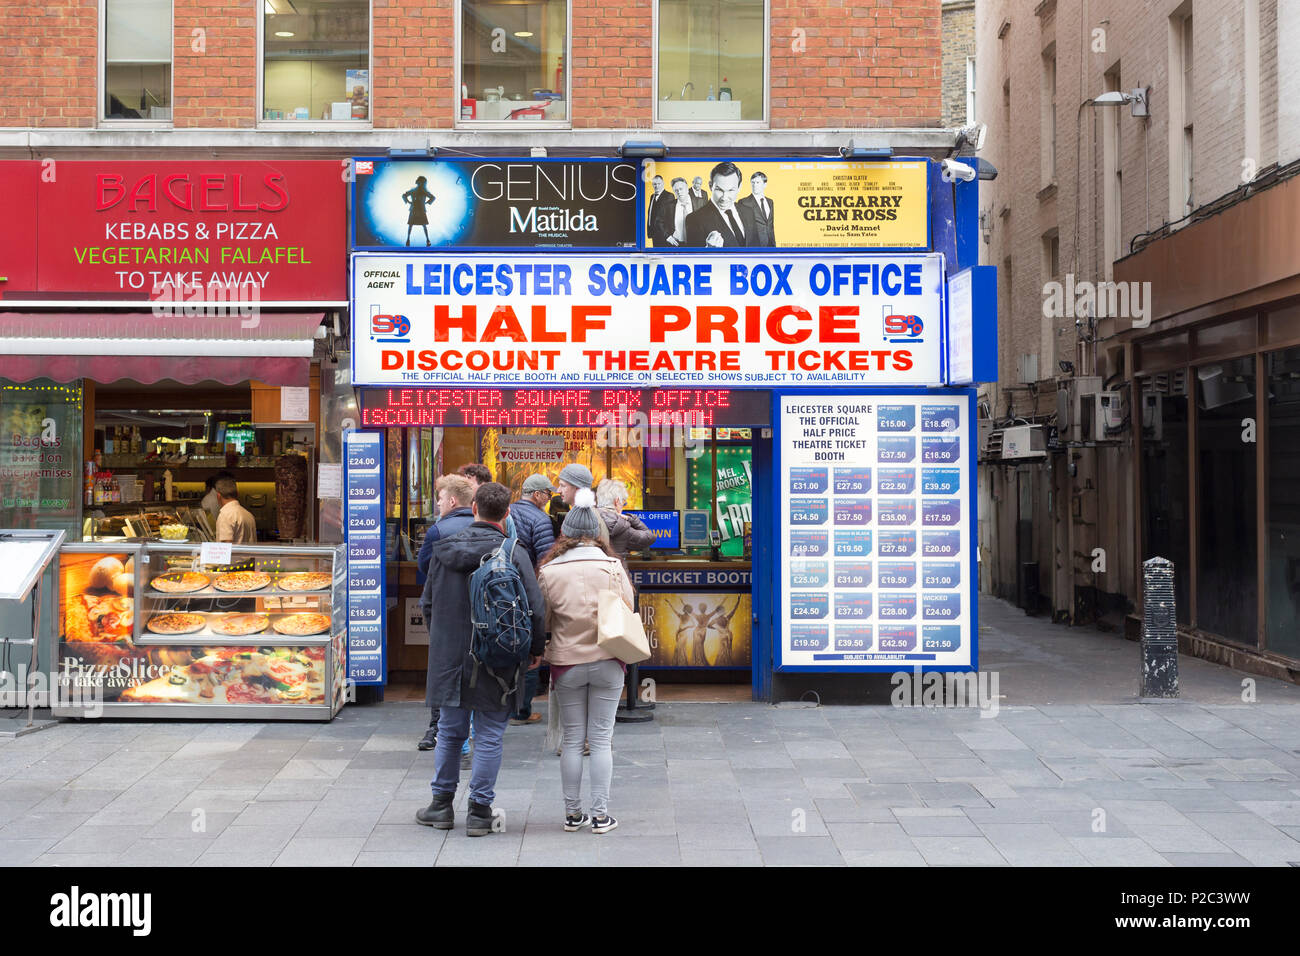 Leicester square box office, half price and discount theatre ticket booth, London, England Stock Photo